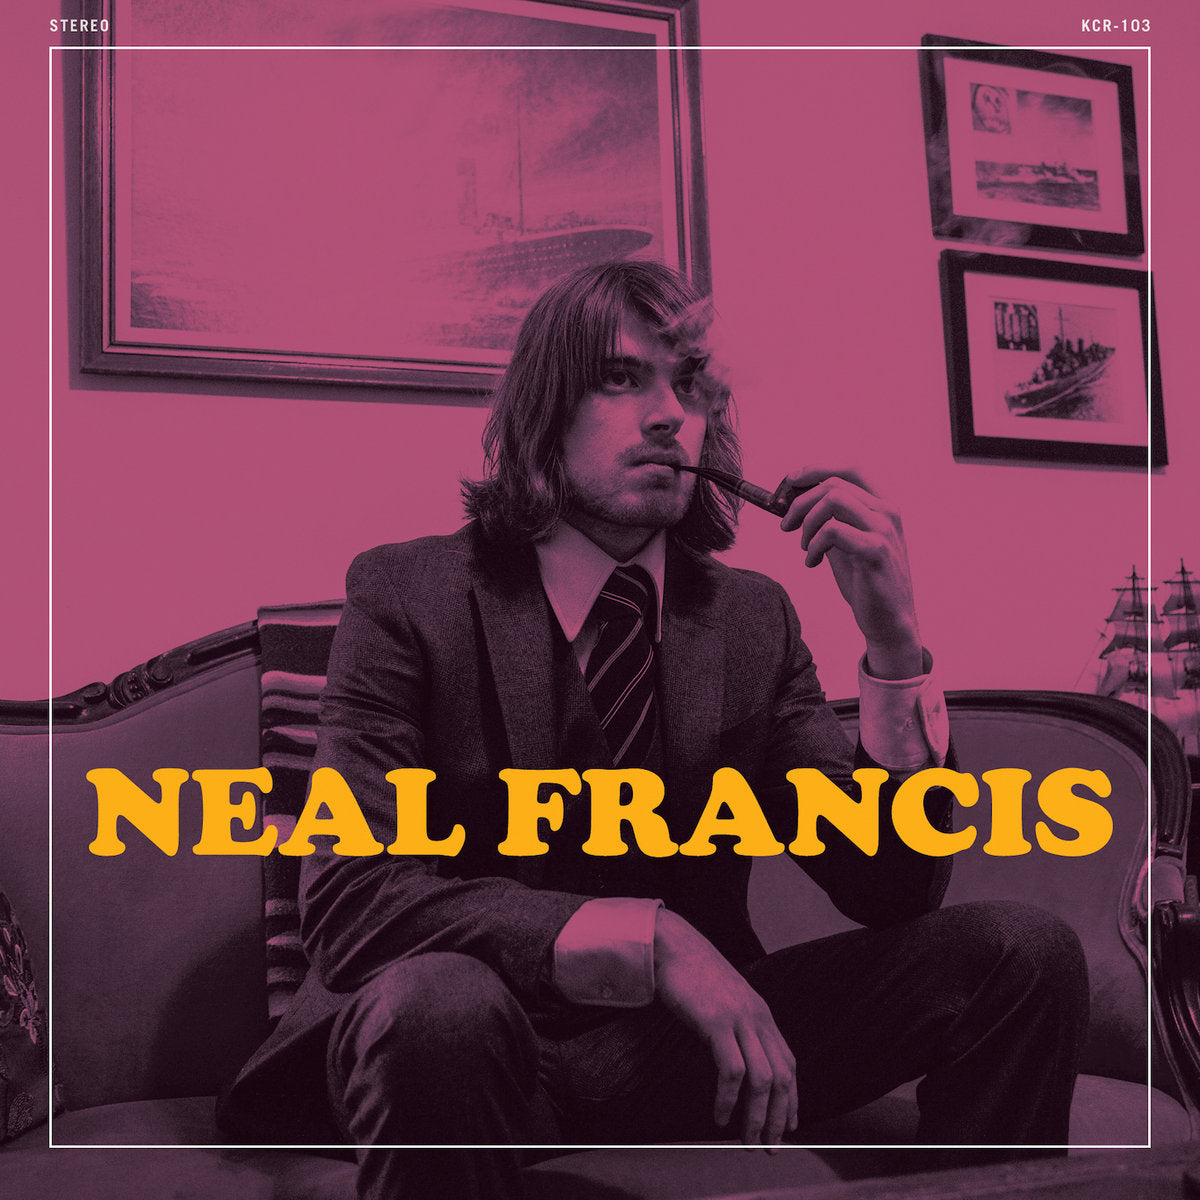 Neal Francis - These Are the Days 7""